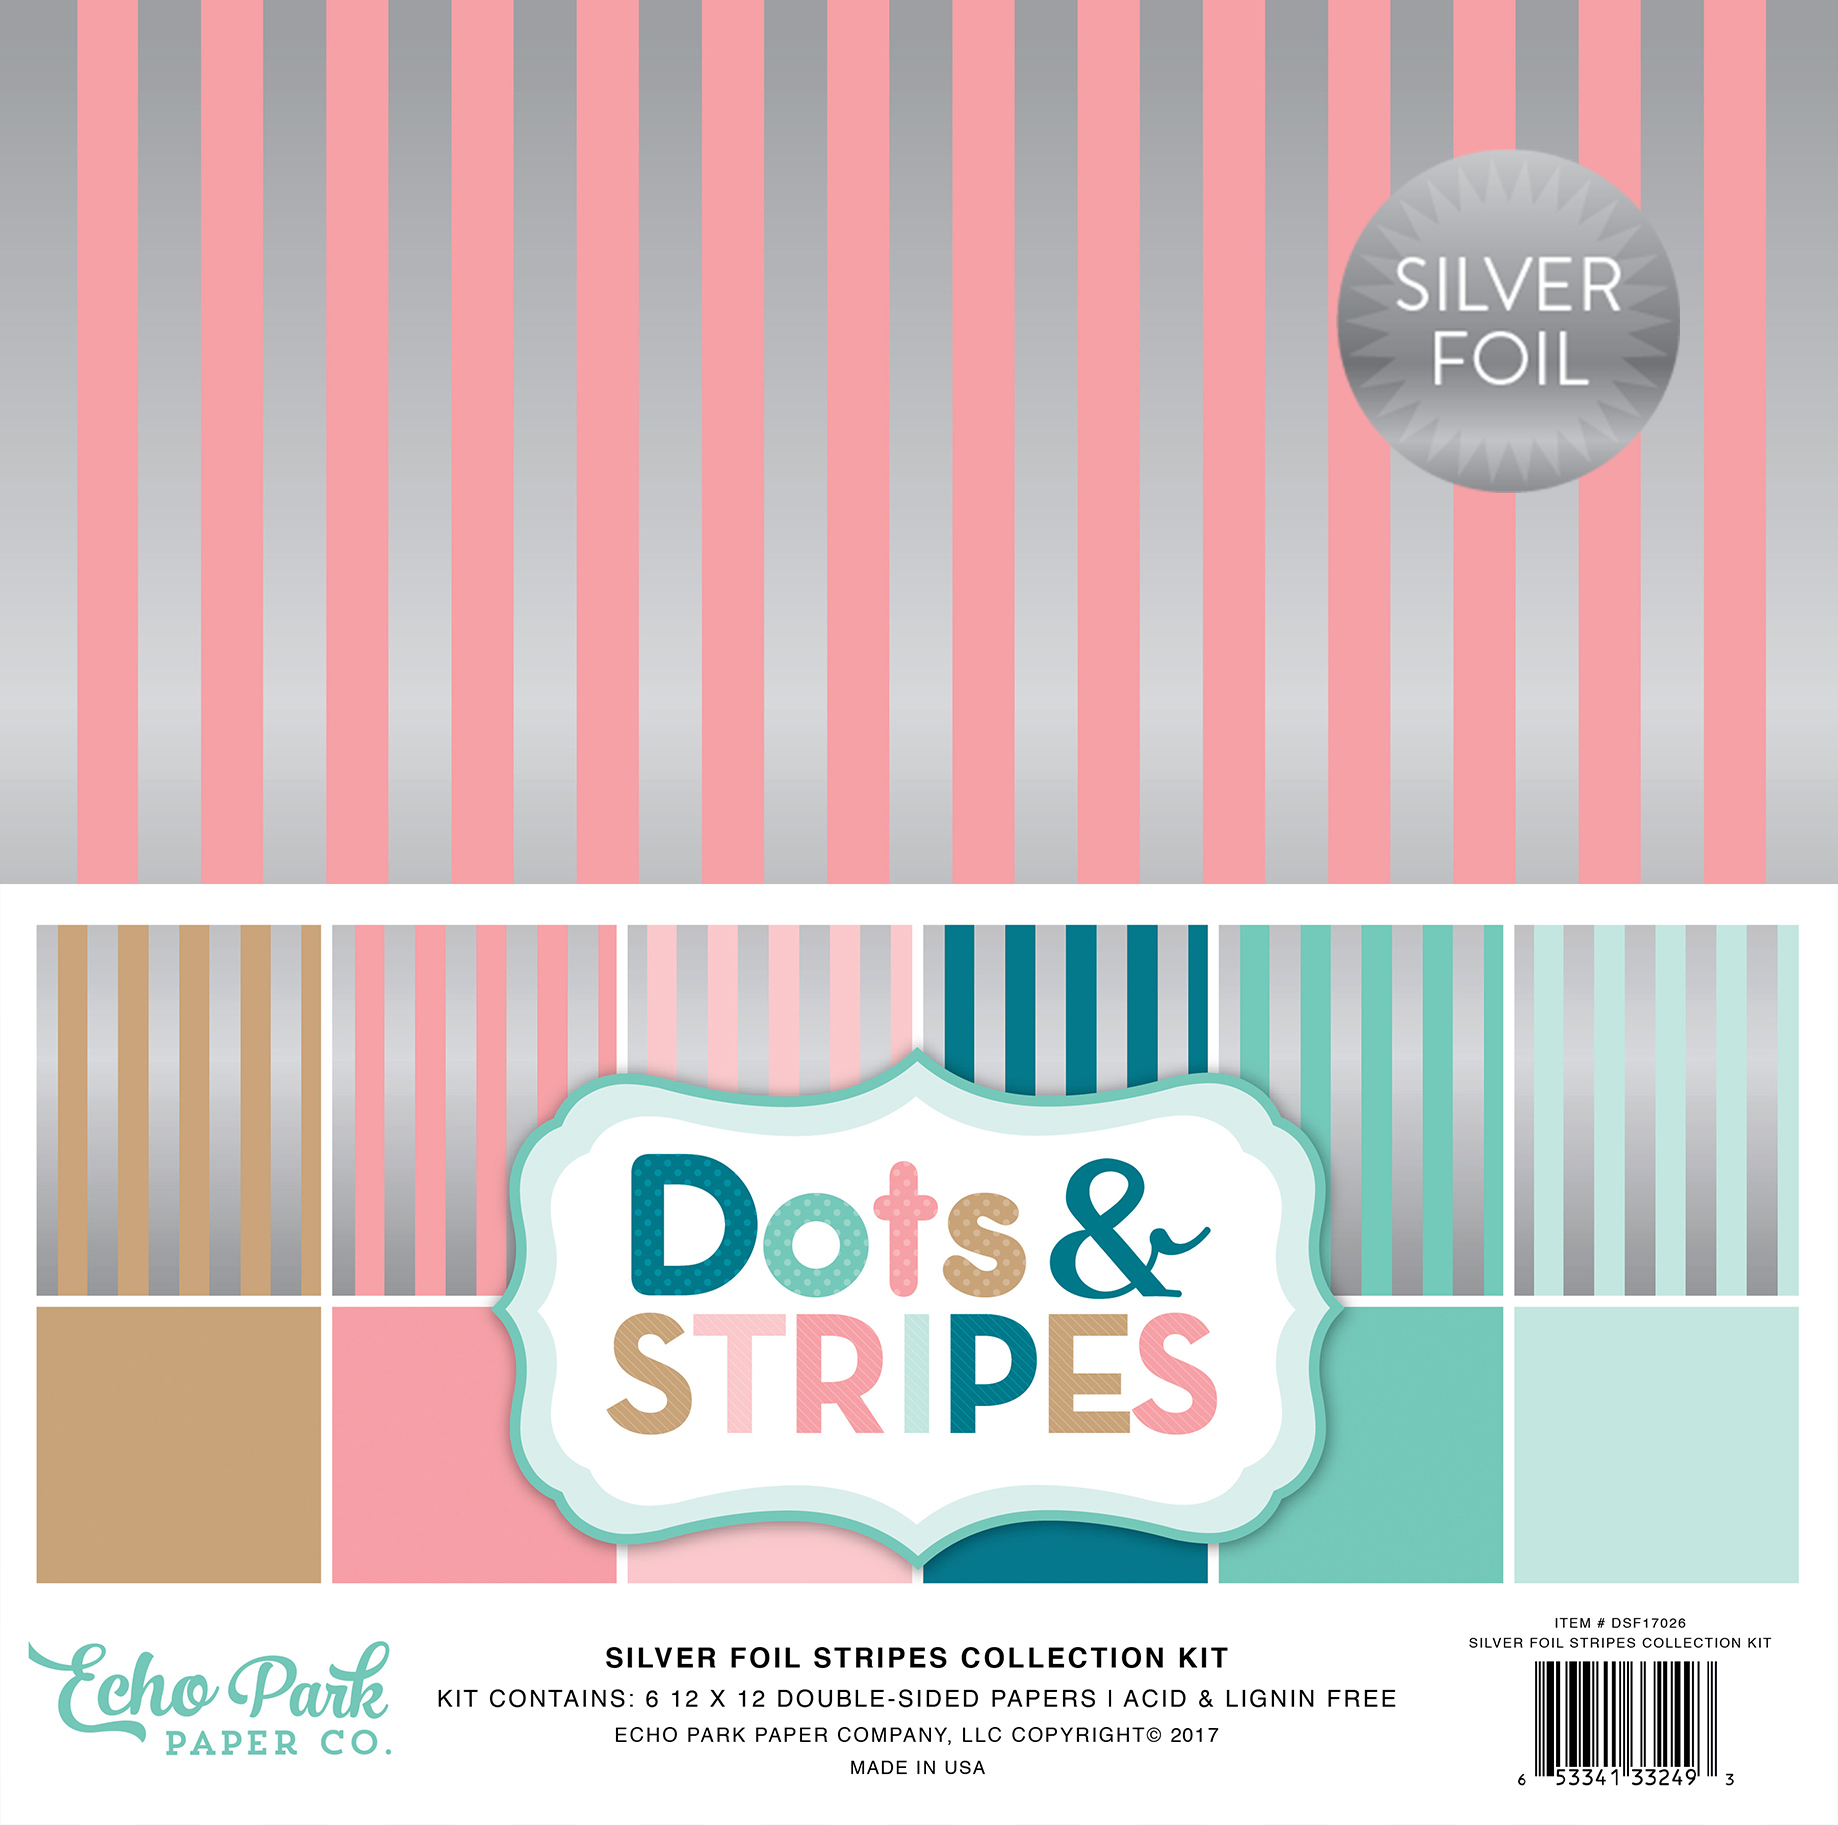 Dots & Stripes Silver Foil Stripes